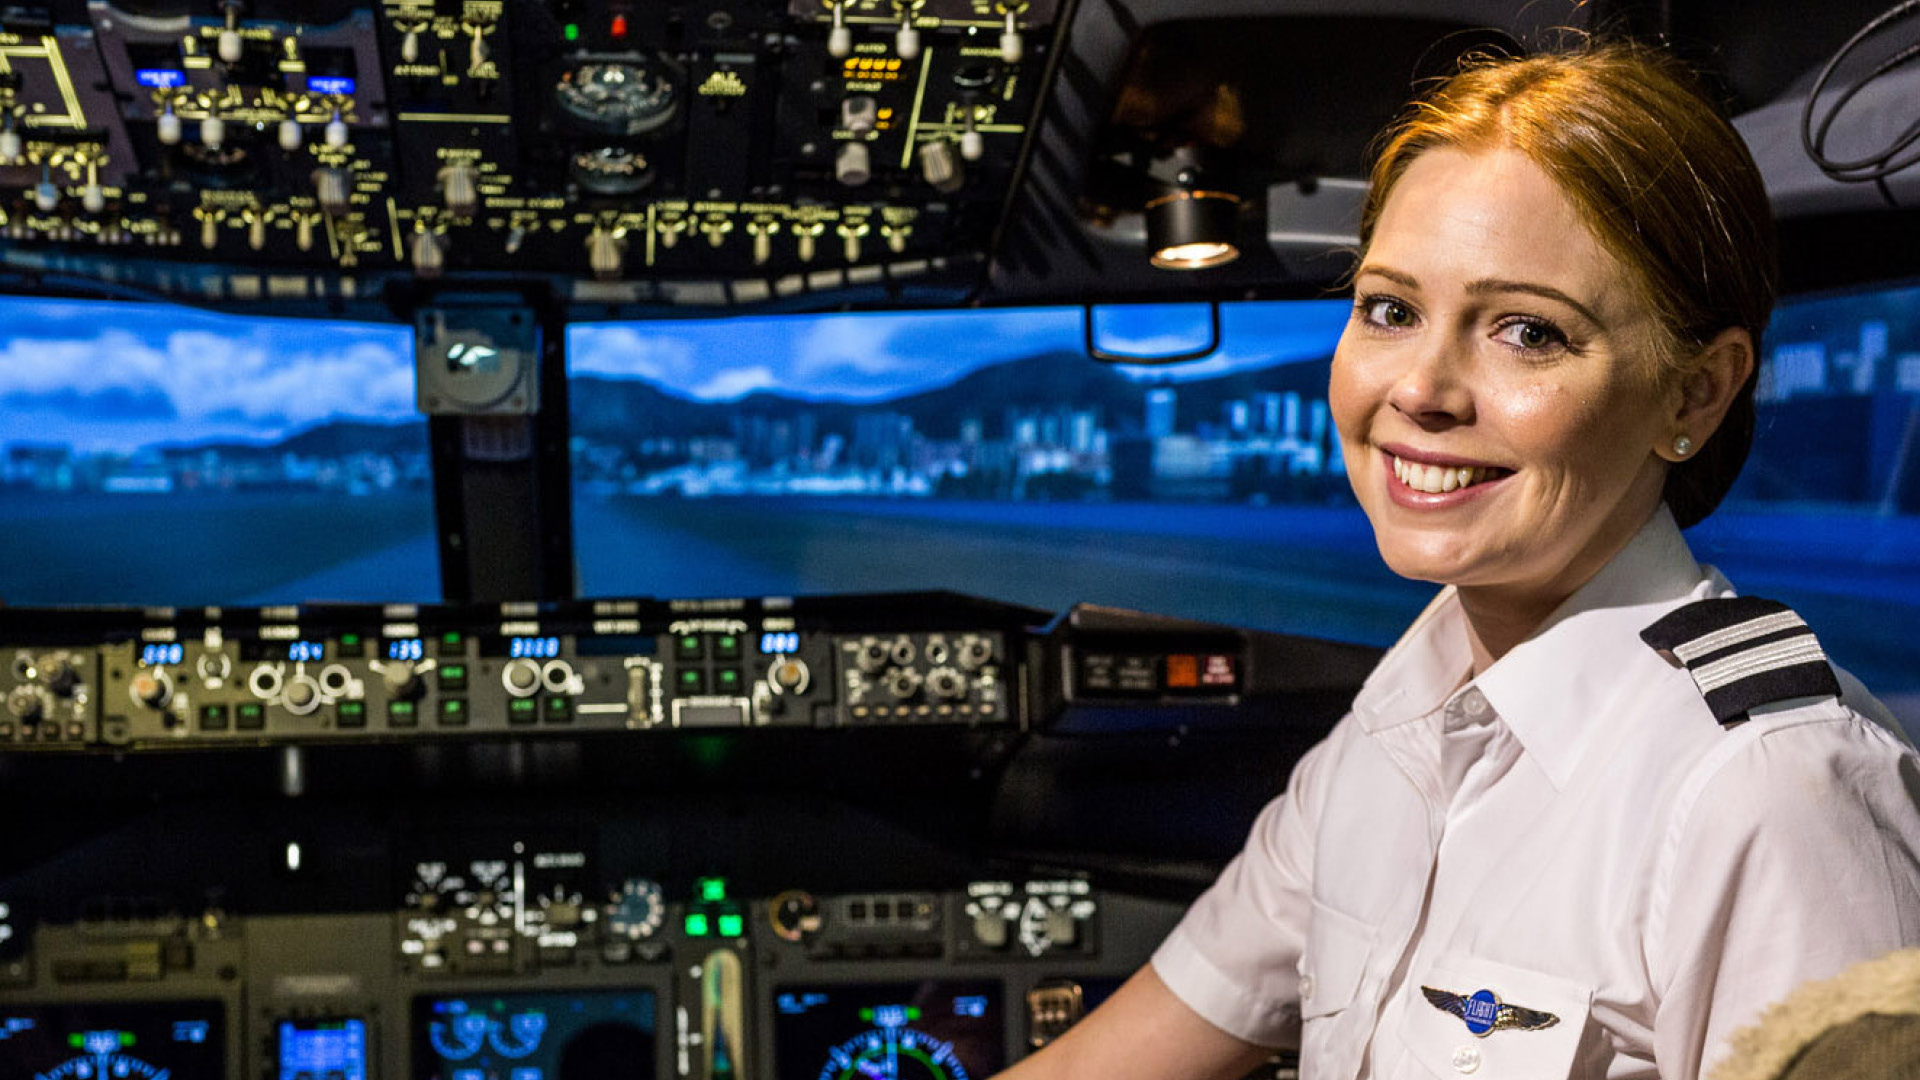 Ultimate guide to studying and working in aviation